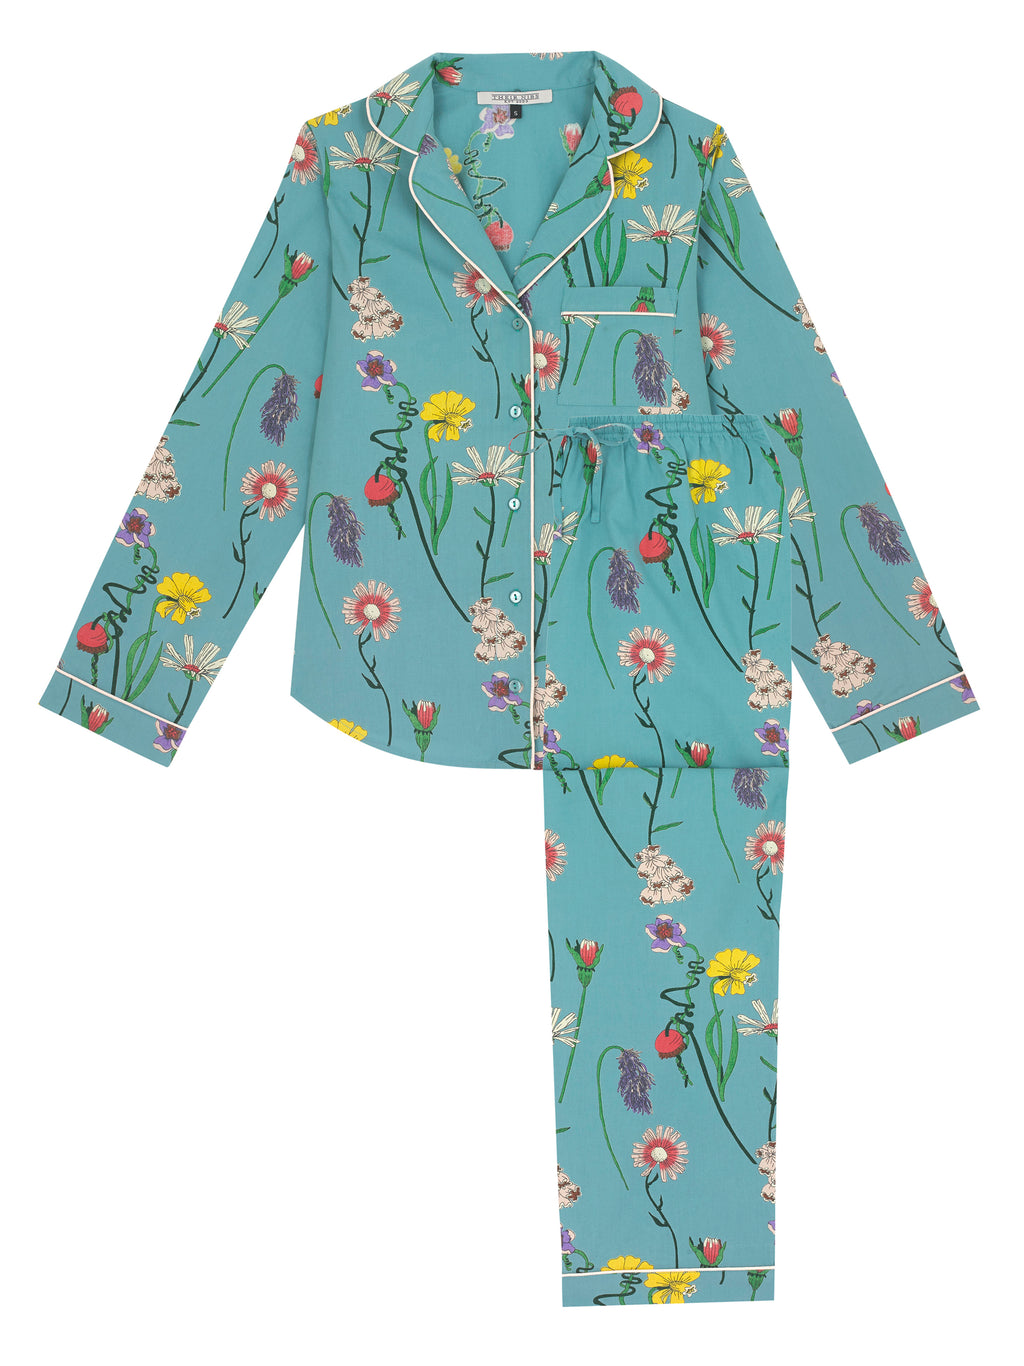 Ladies Traditional Cotton Pyjama Set, Field Flowers Print